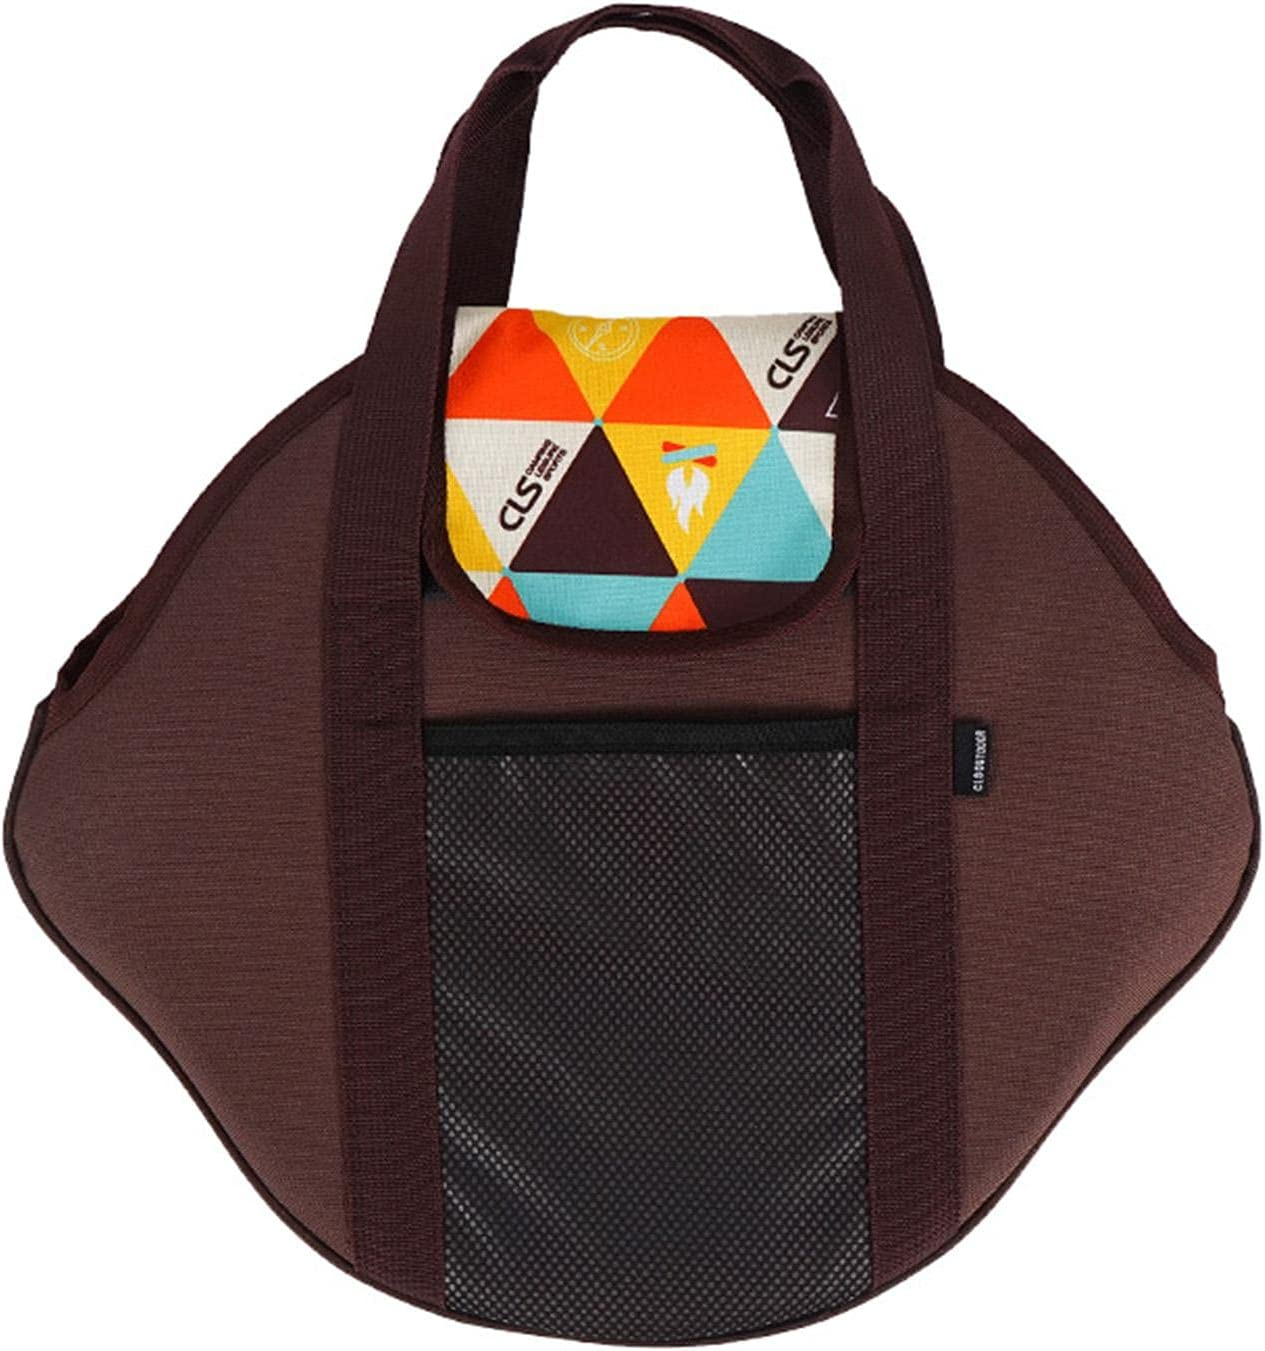 Sales of SALE items from new works Max 70% OFF Amusingholiday Carry Bag Travel Carrier Cast Case Poc Accessory